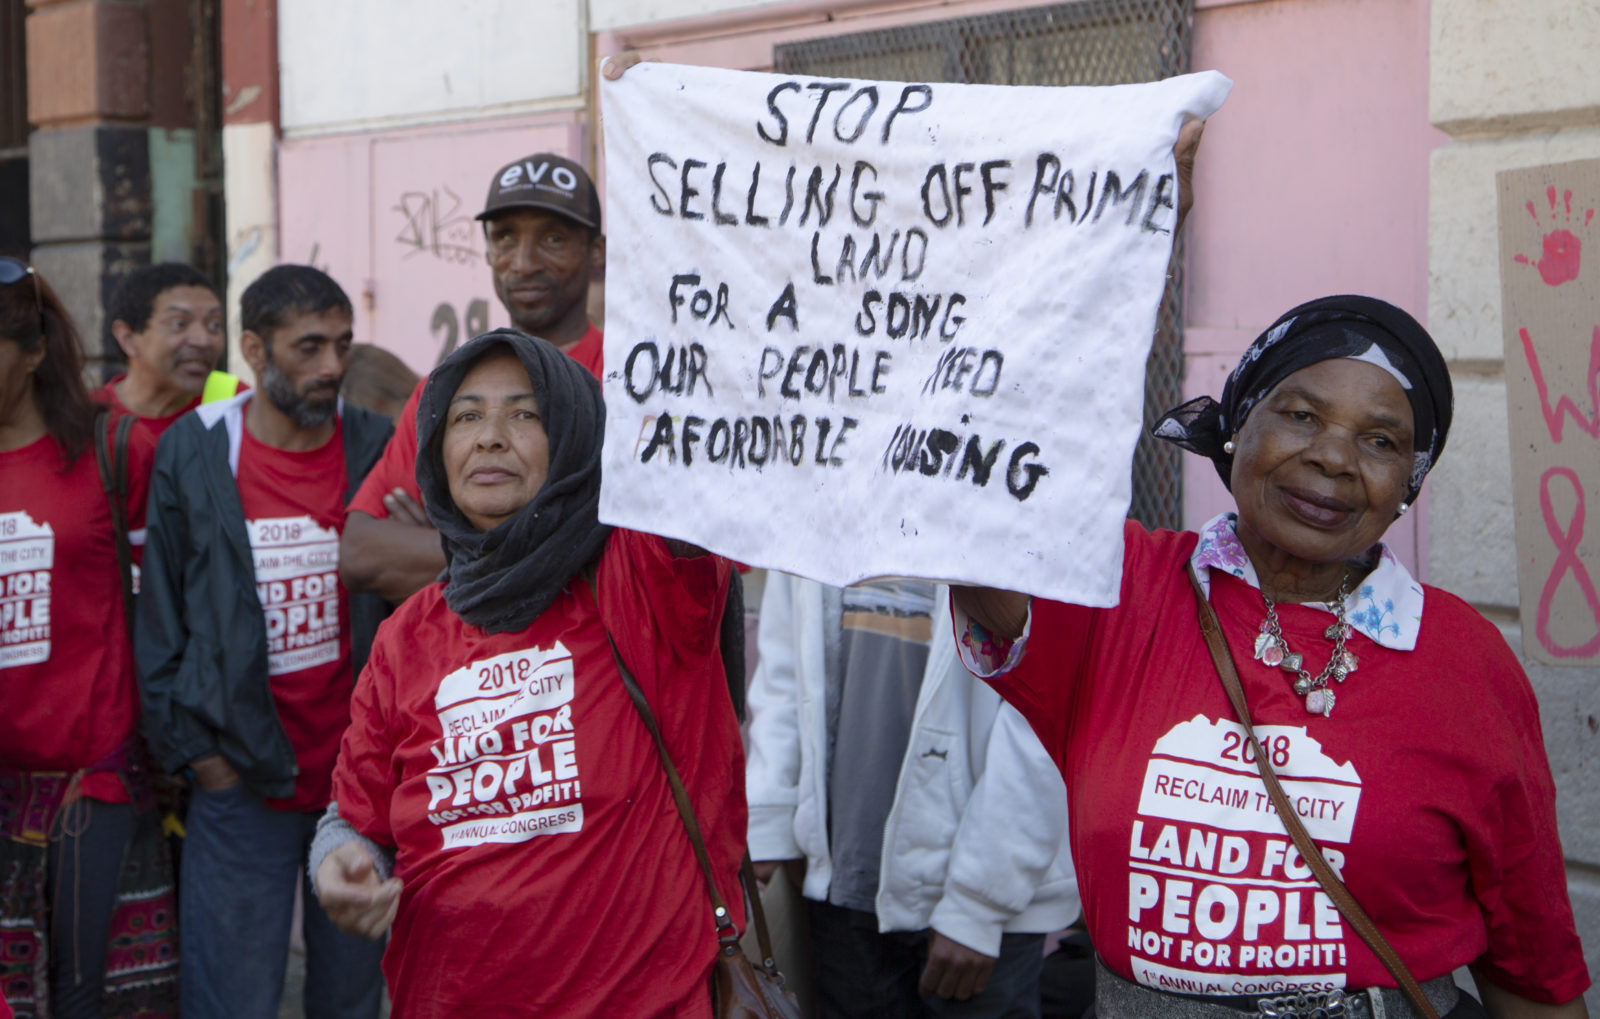 Cape Town housing movement, Reclaim the City, affordable housing, inner city housing, public housing, rising inequality, apartheid